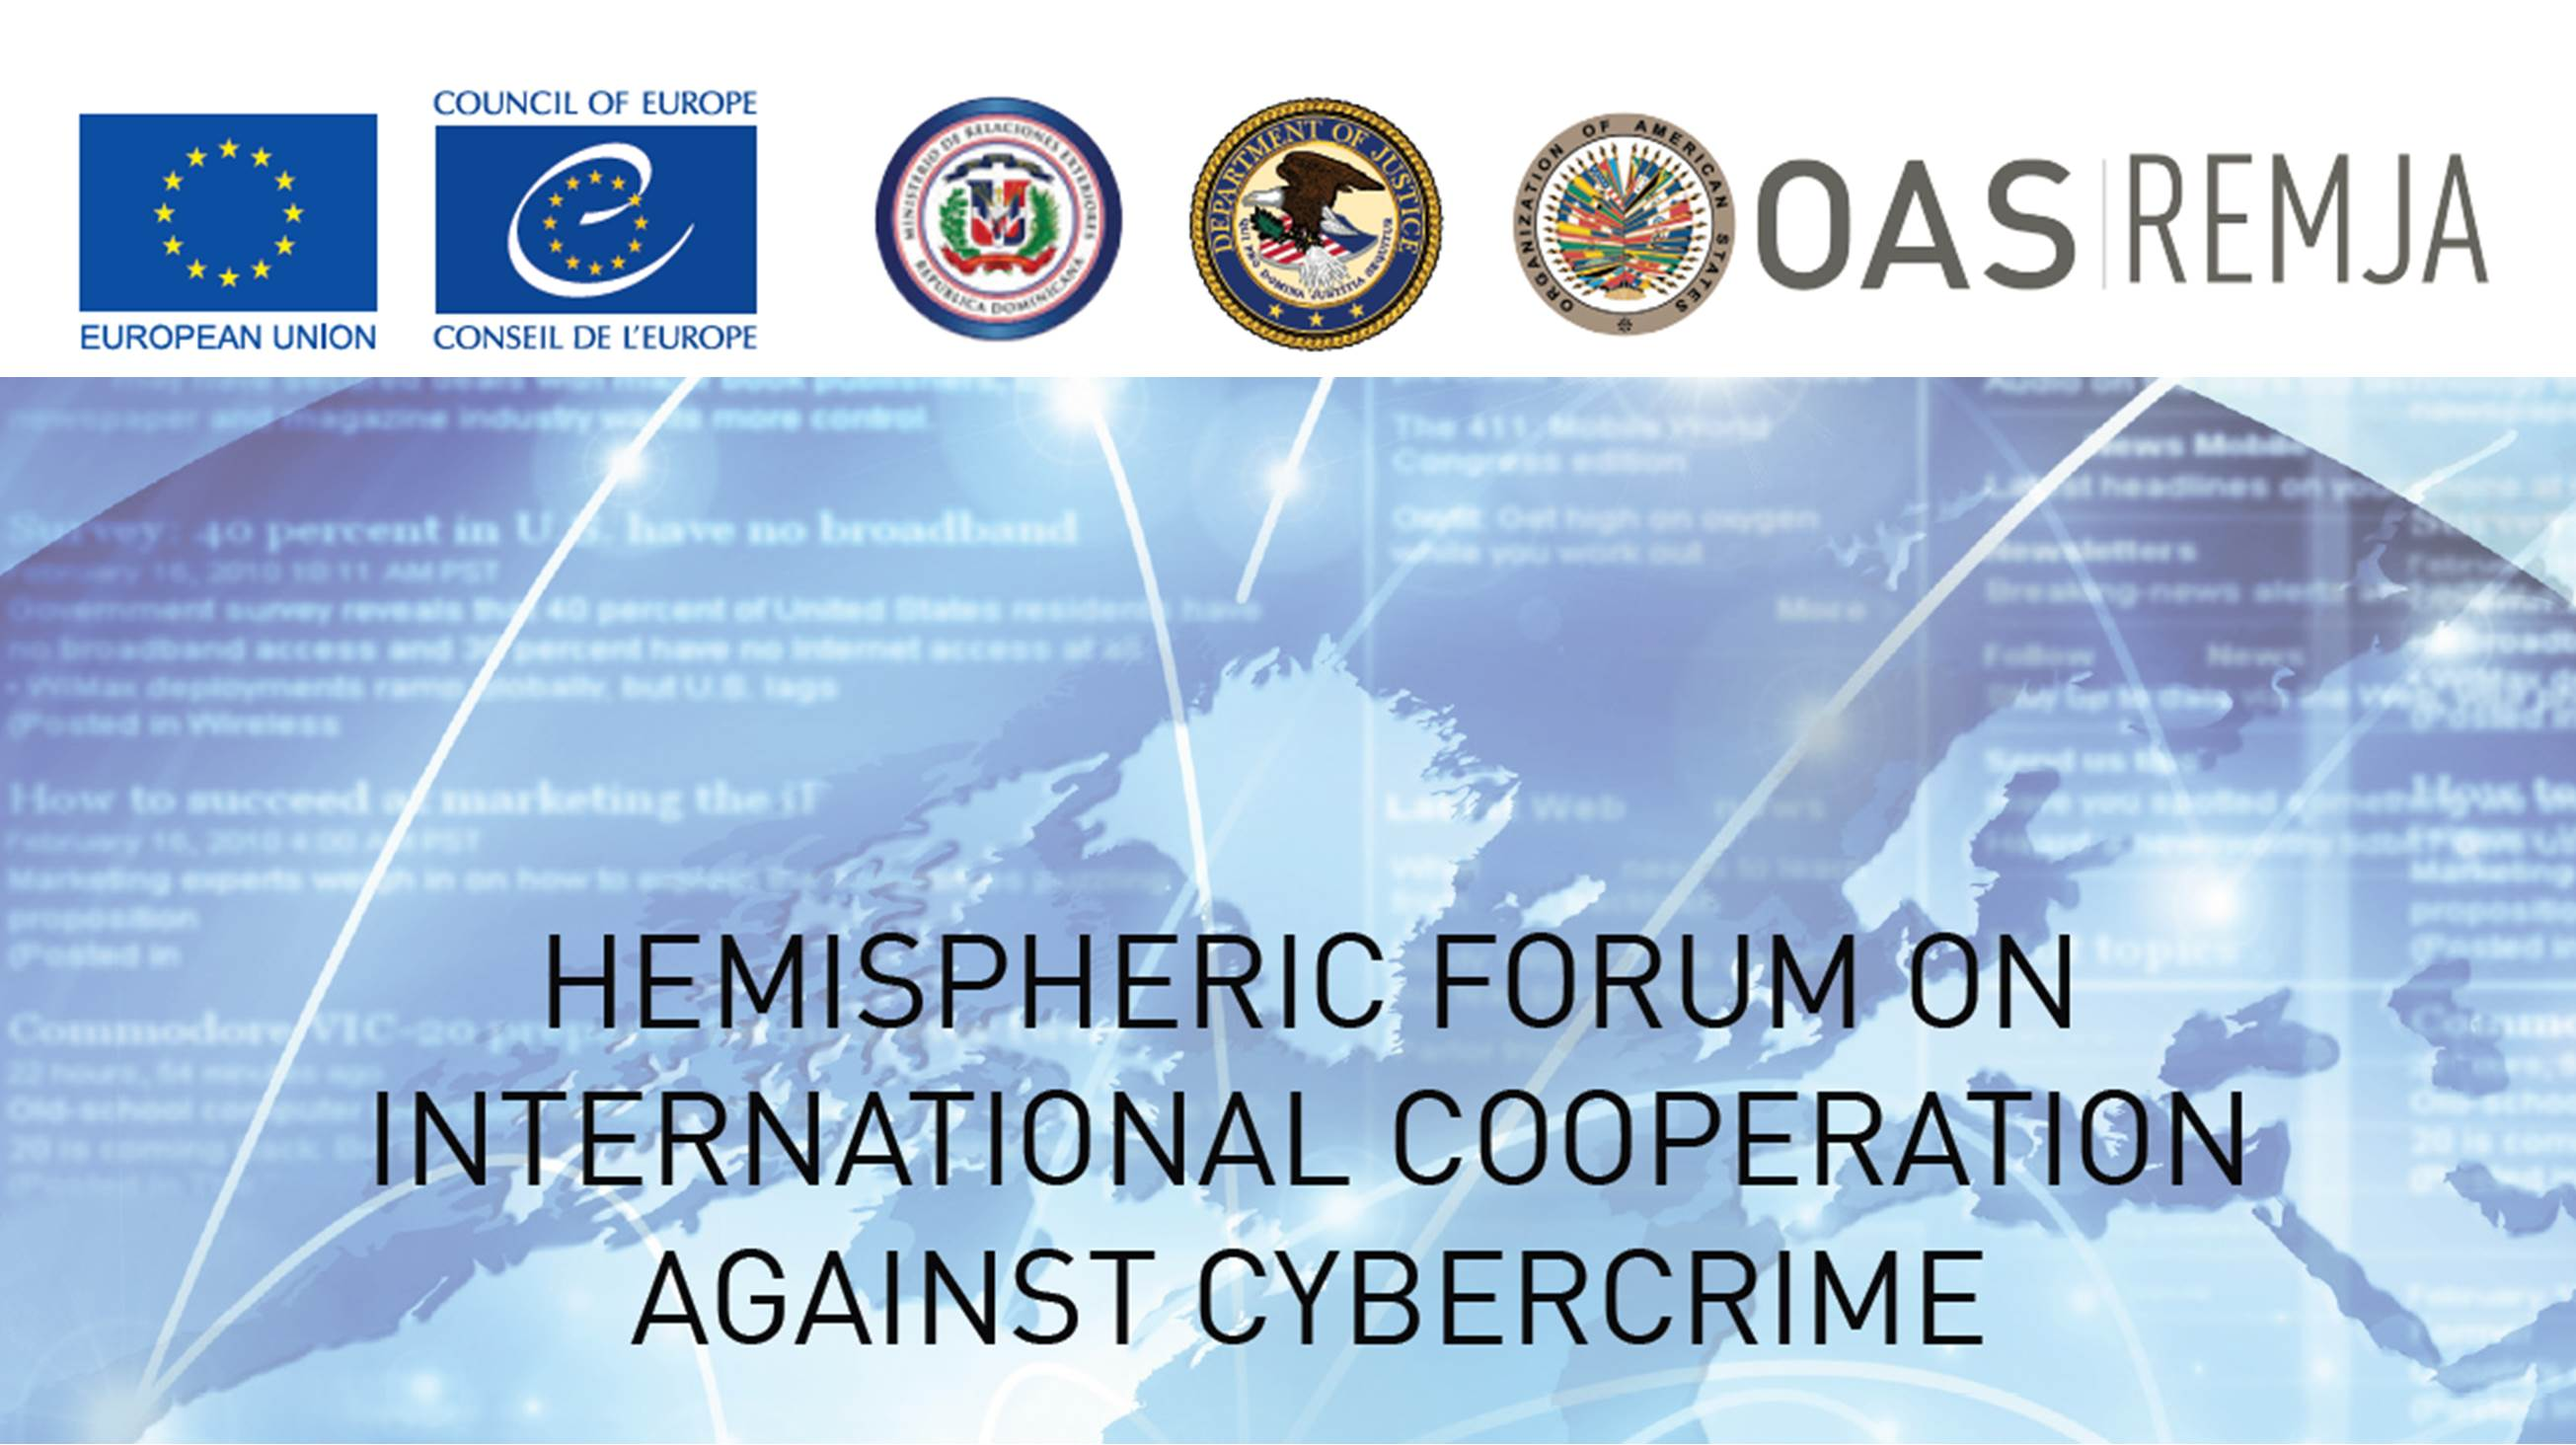 Hemispheric Forum on International Cooperation against Cybercrime